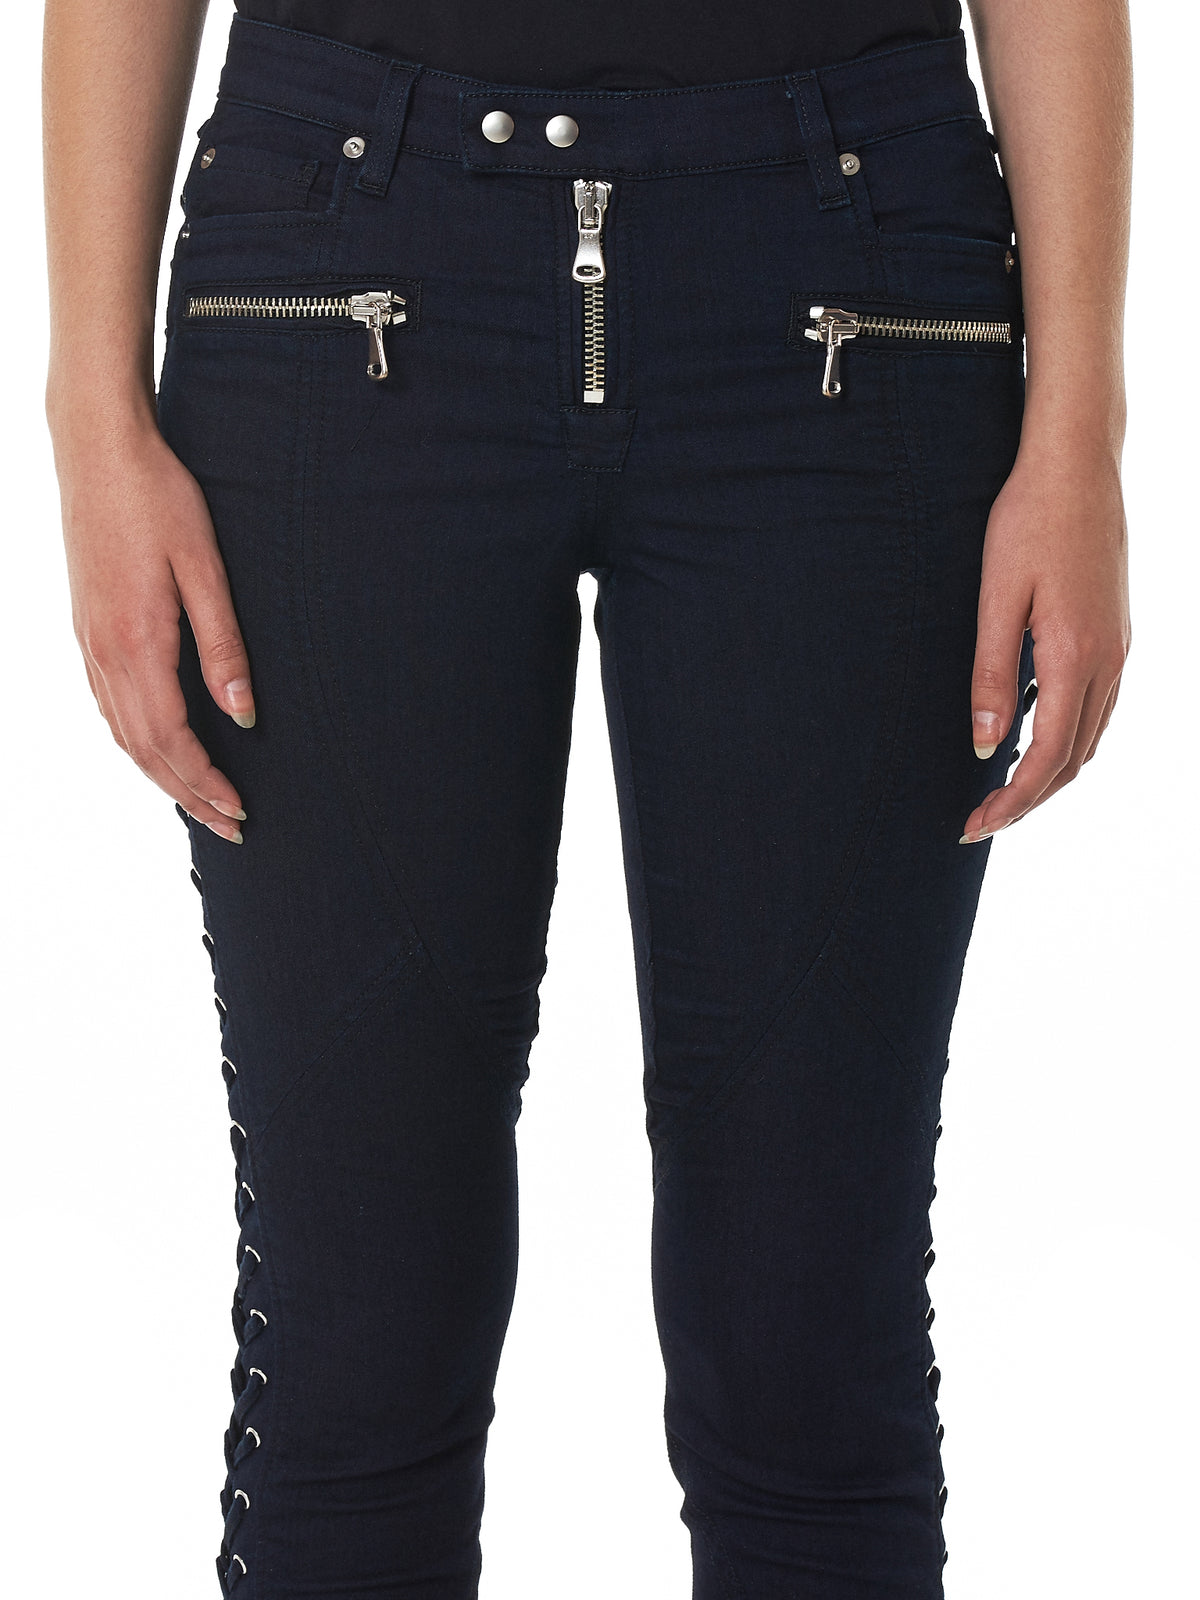 Faith Connexion Jeans - Hlorenzo Detail 2